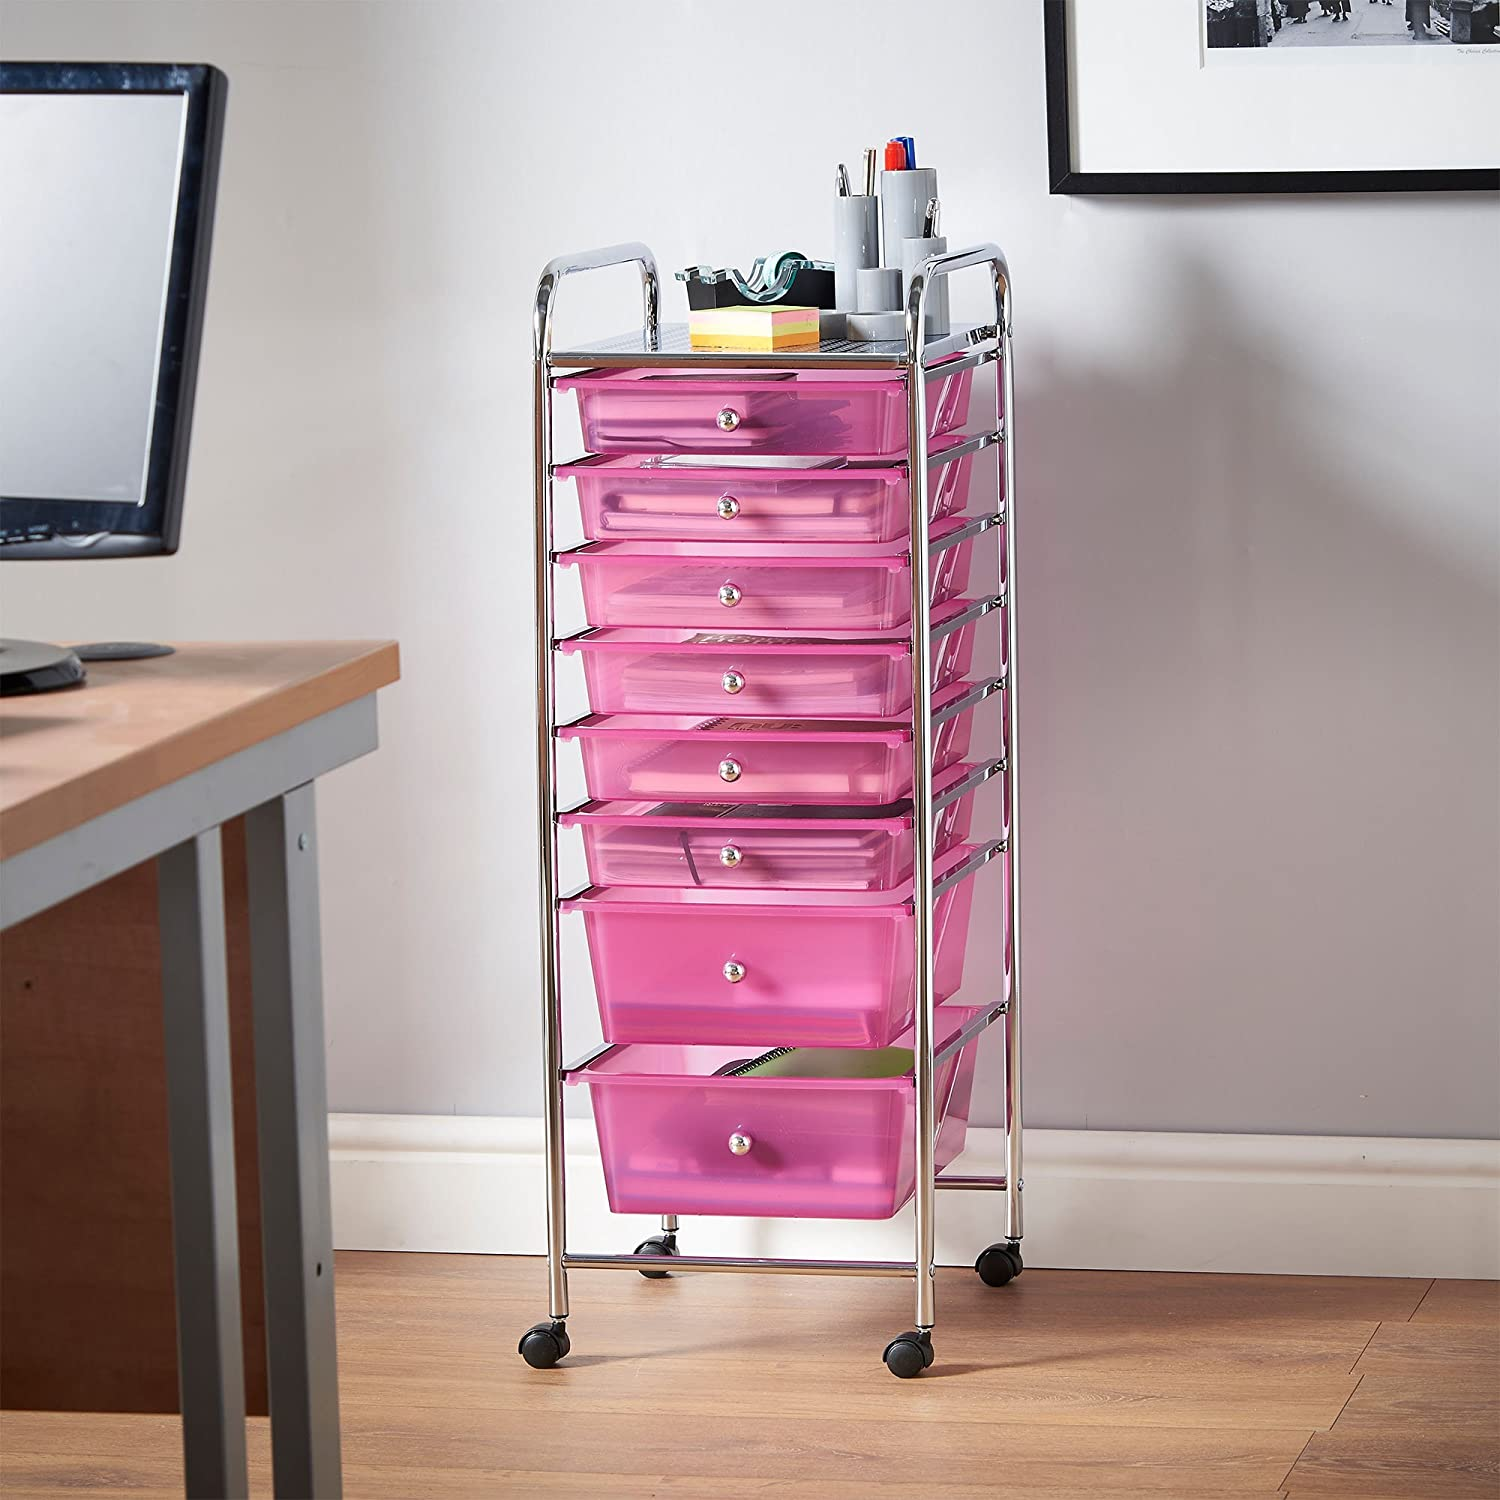 Uncategorized Pink Storage Cart amazon com vonhaus 8 drawer pink rolling cart organizer utility for home office and beauty storage kitchen